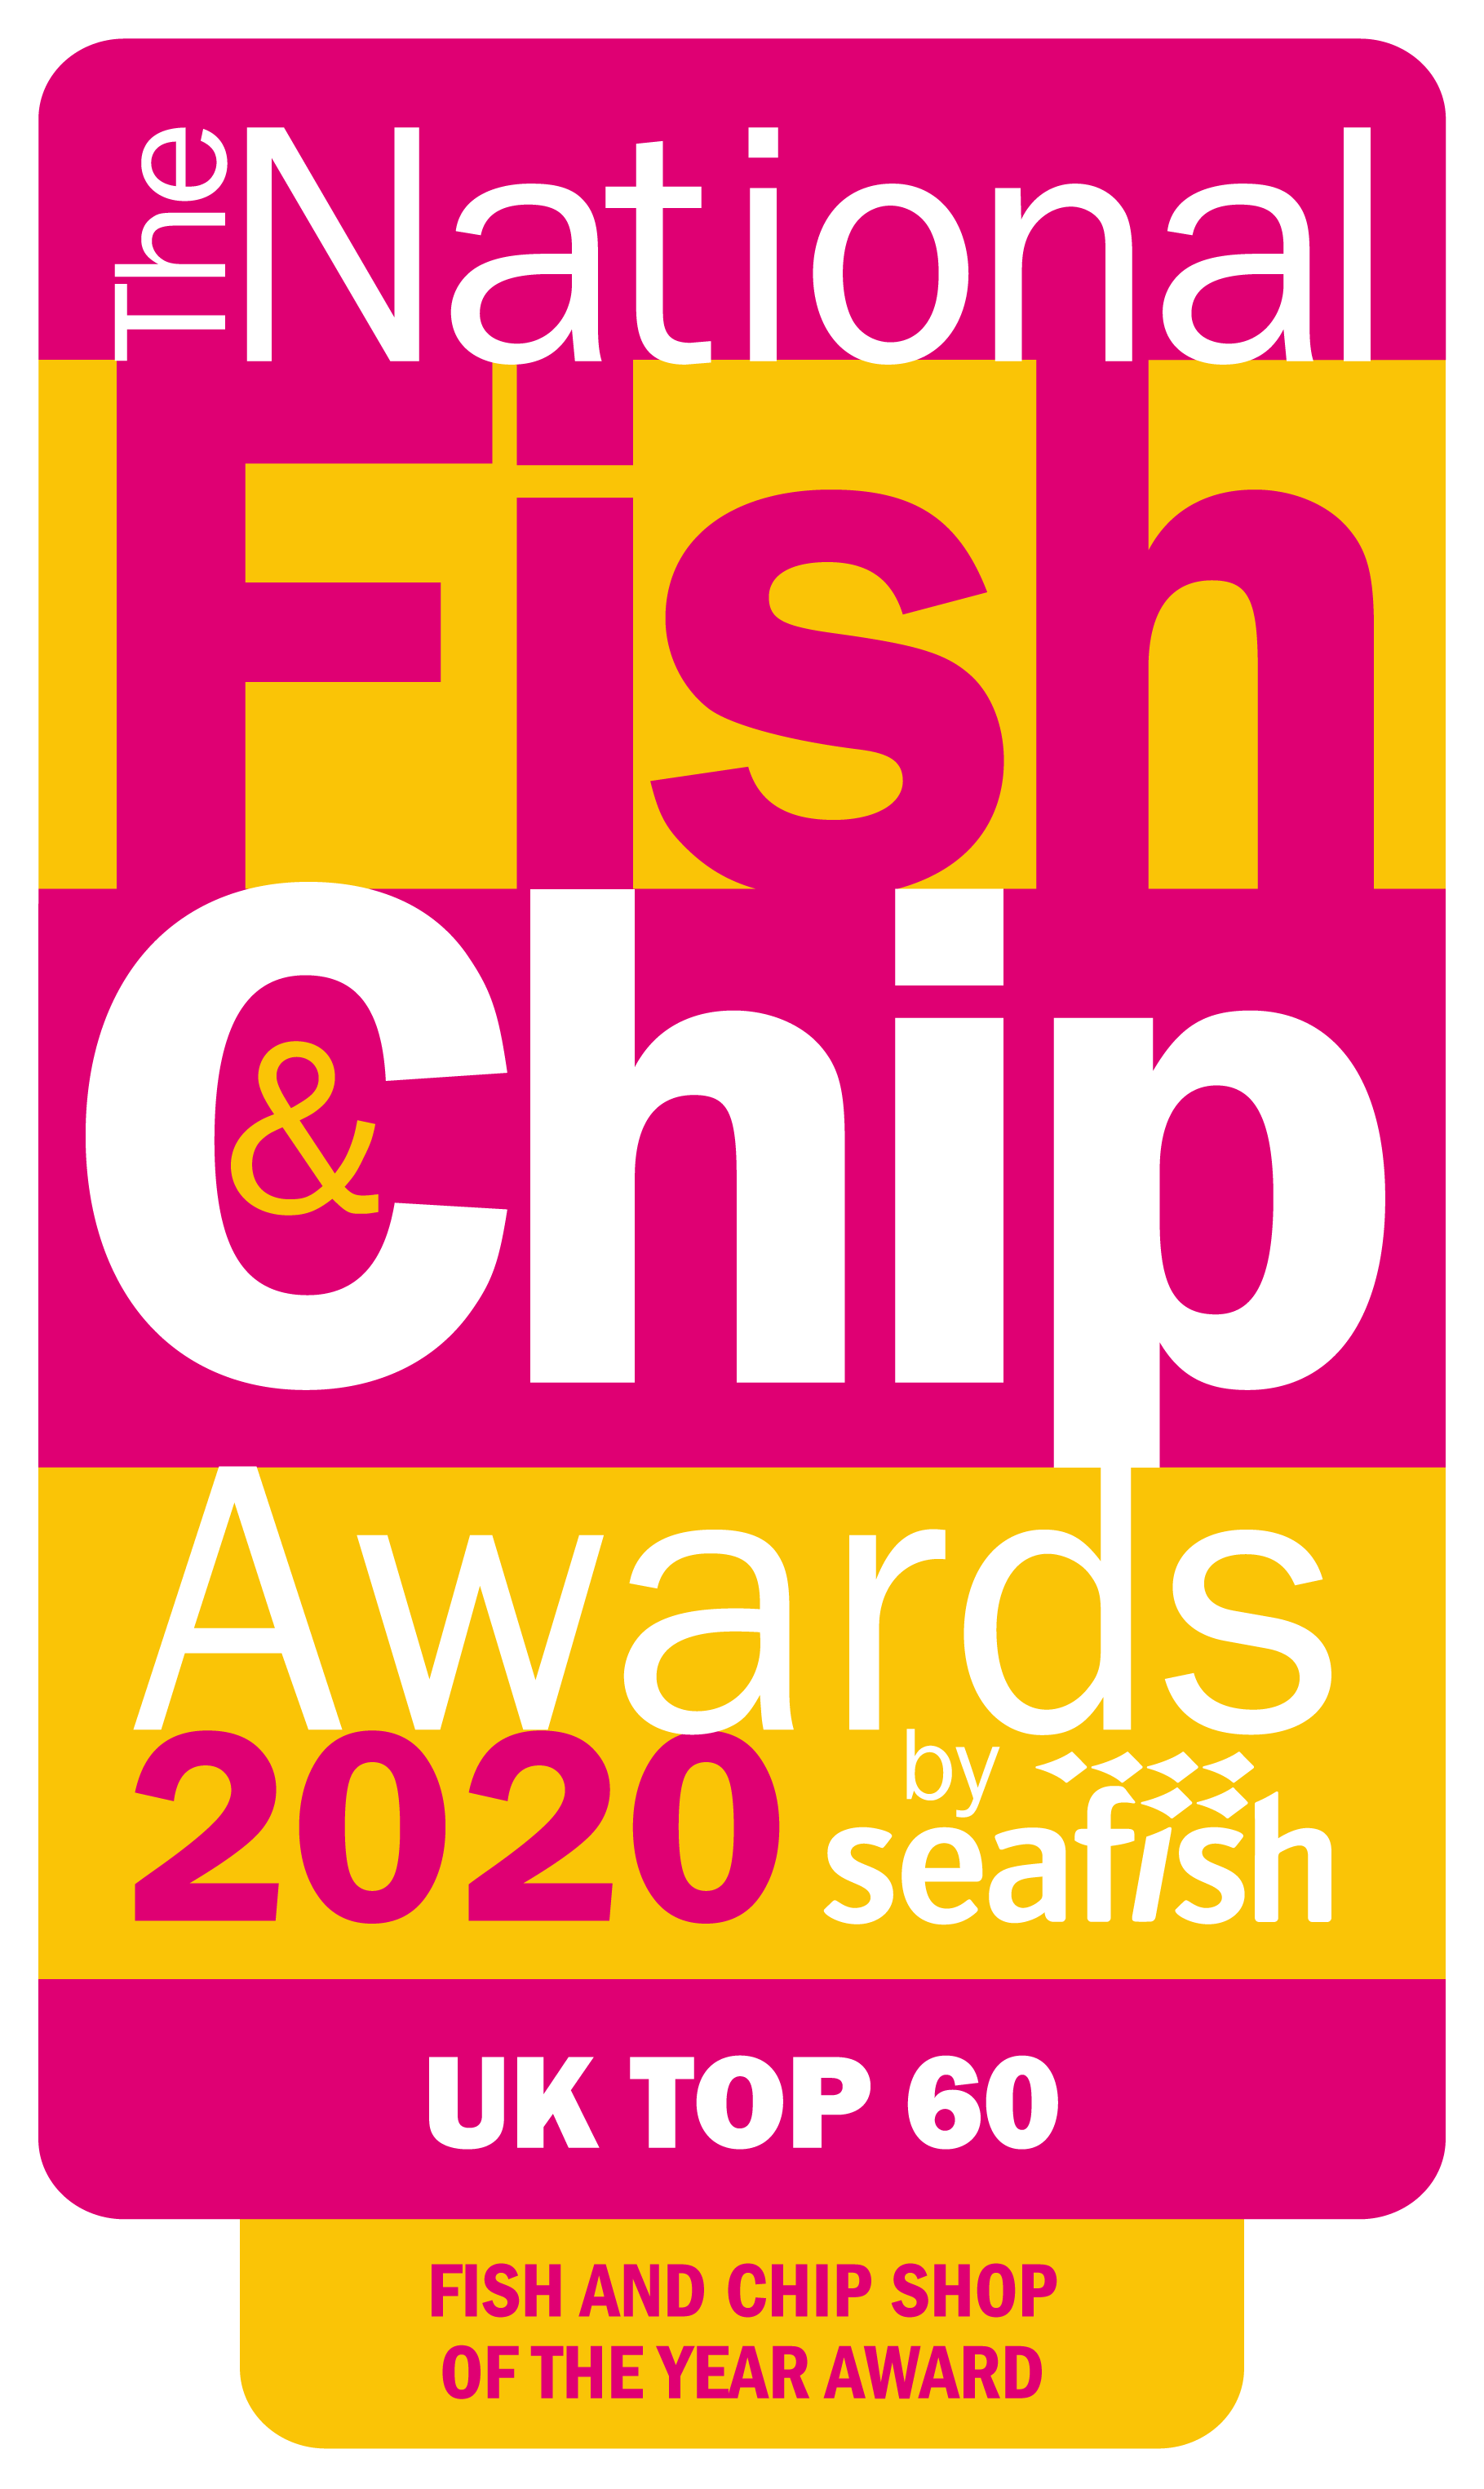 NFCA20 Top 60 Logo - Fish and Chip Shop of the Year Award